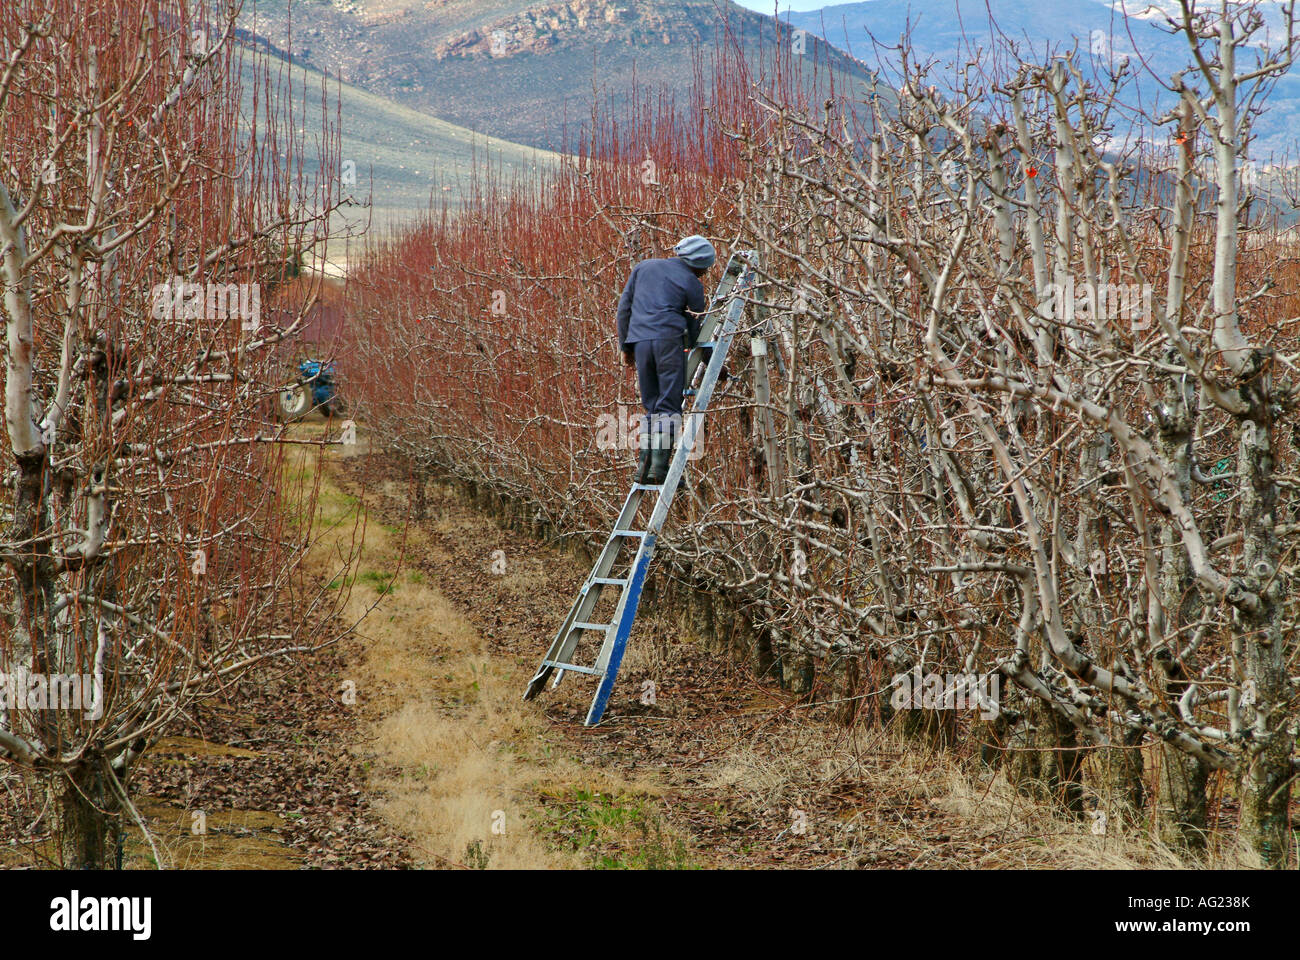 A farm worker stands atop a ladder to reach the upper parts of the trees he is pruning - Stock Image